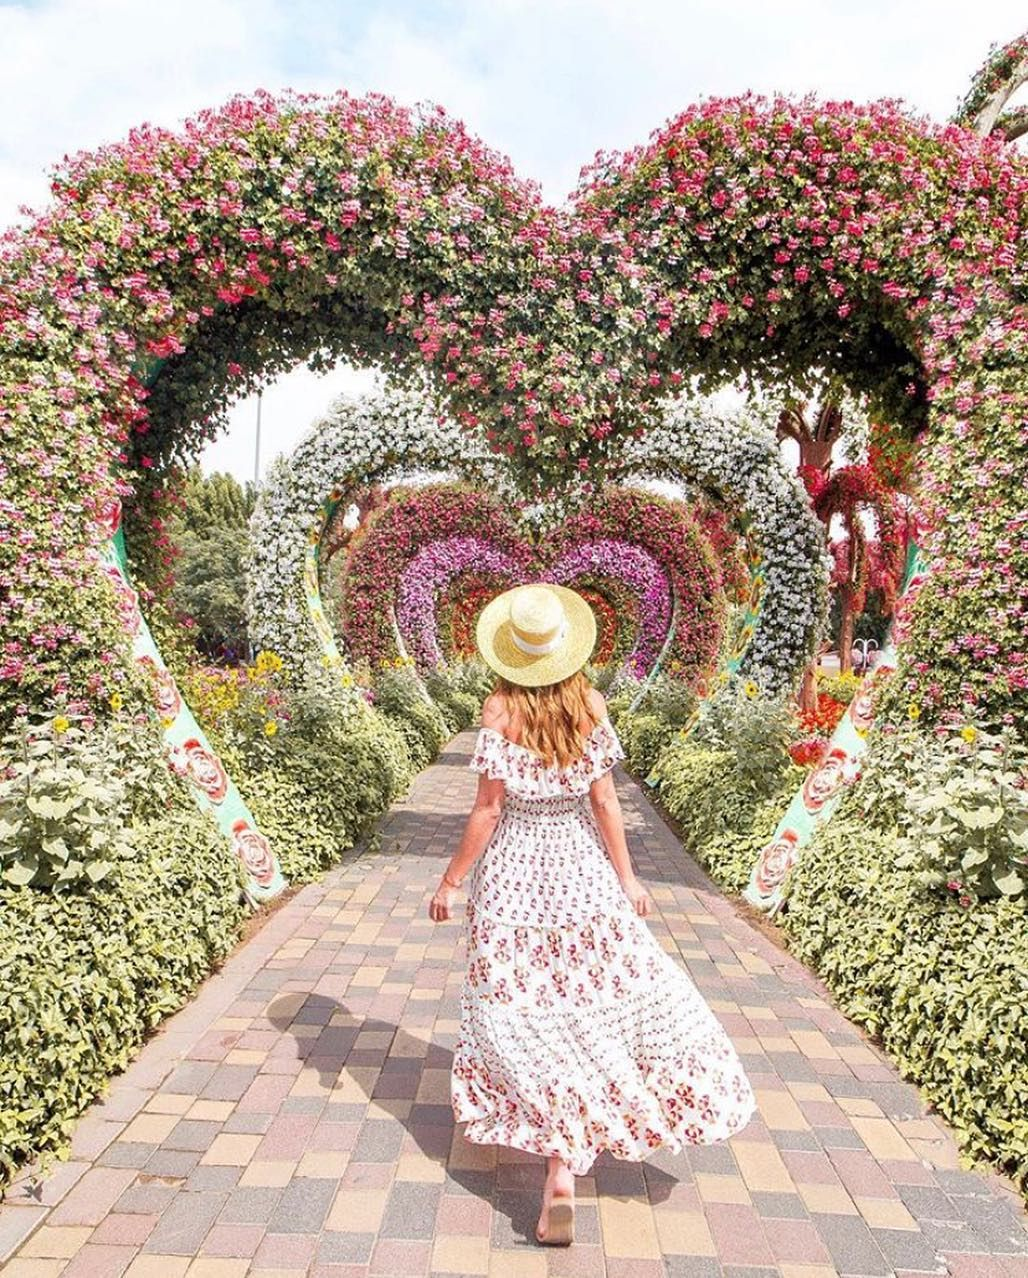 Dubai Miracle Garden Instagram travel inspiration